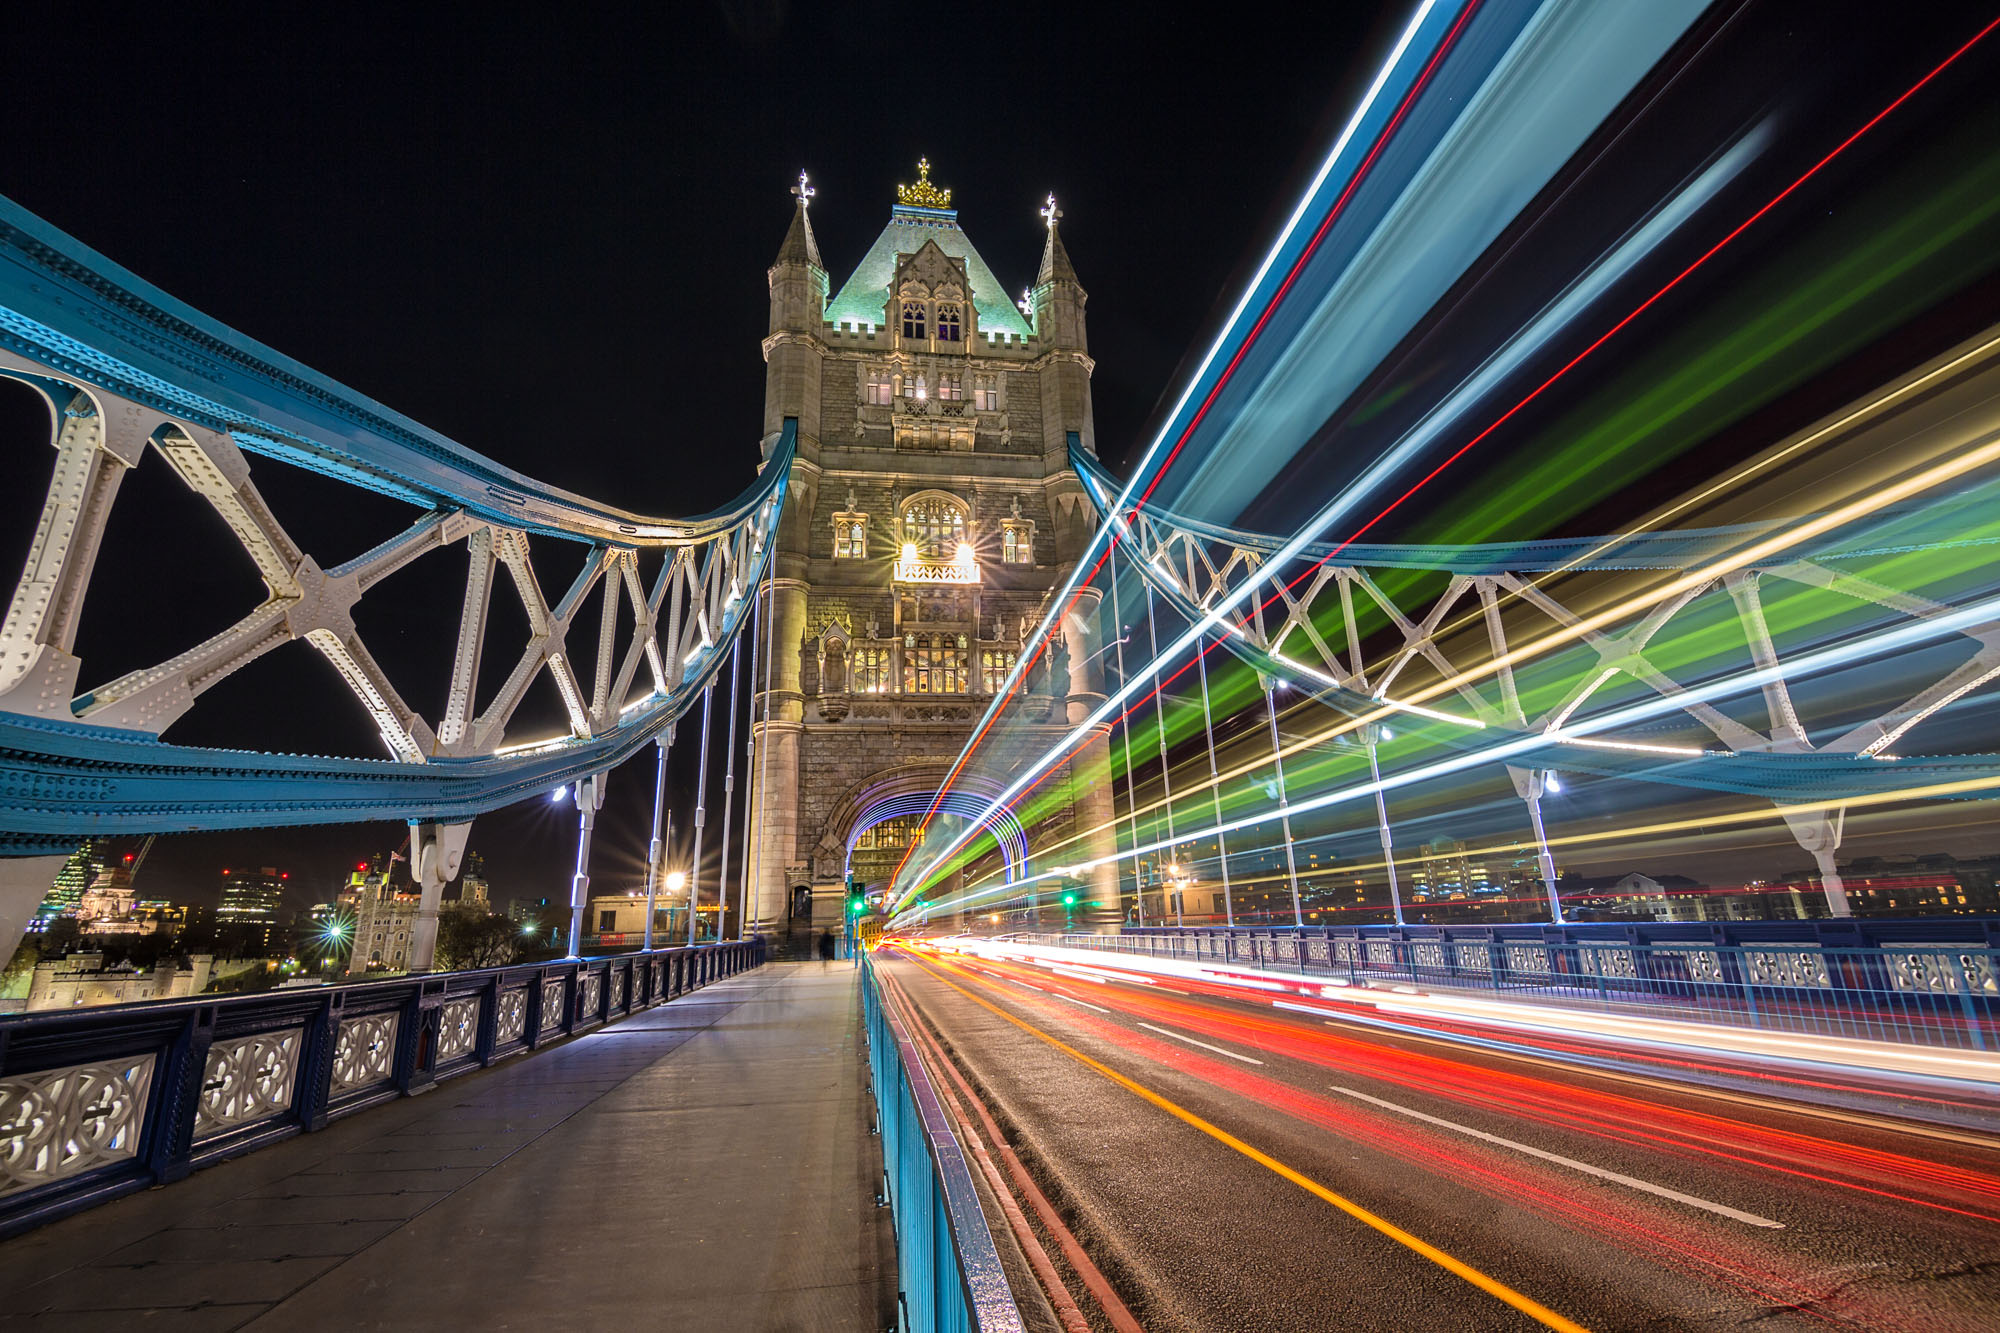 long exposure night photography of Tower Bridge in London with passing traffic captured as light trails